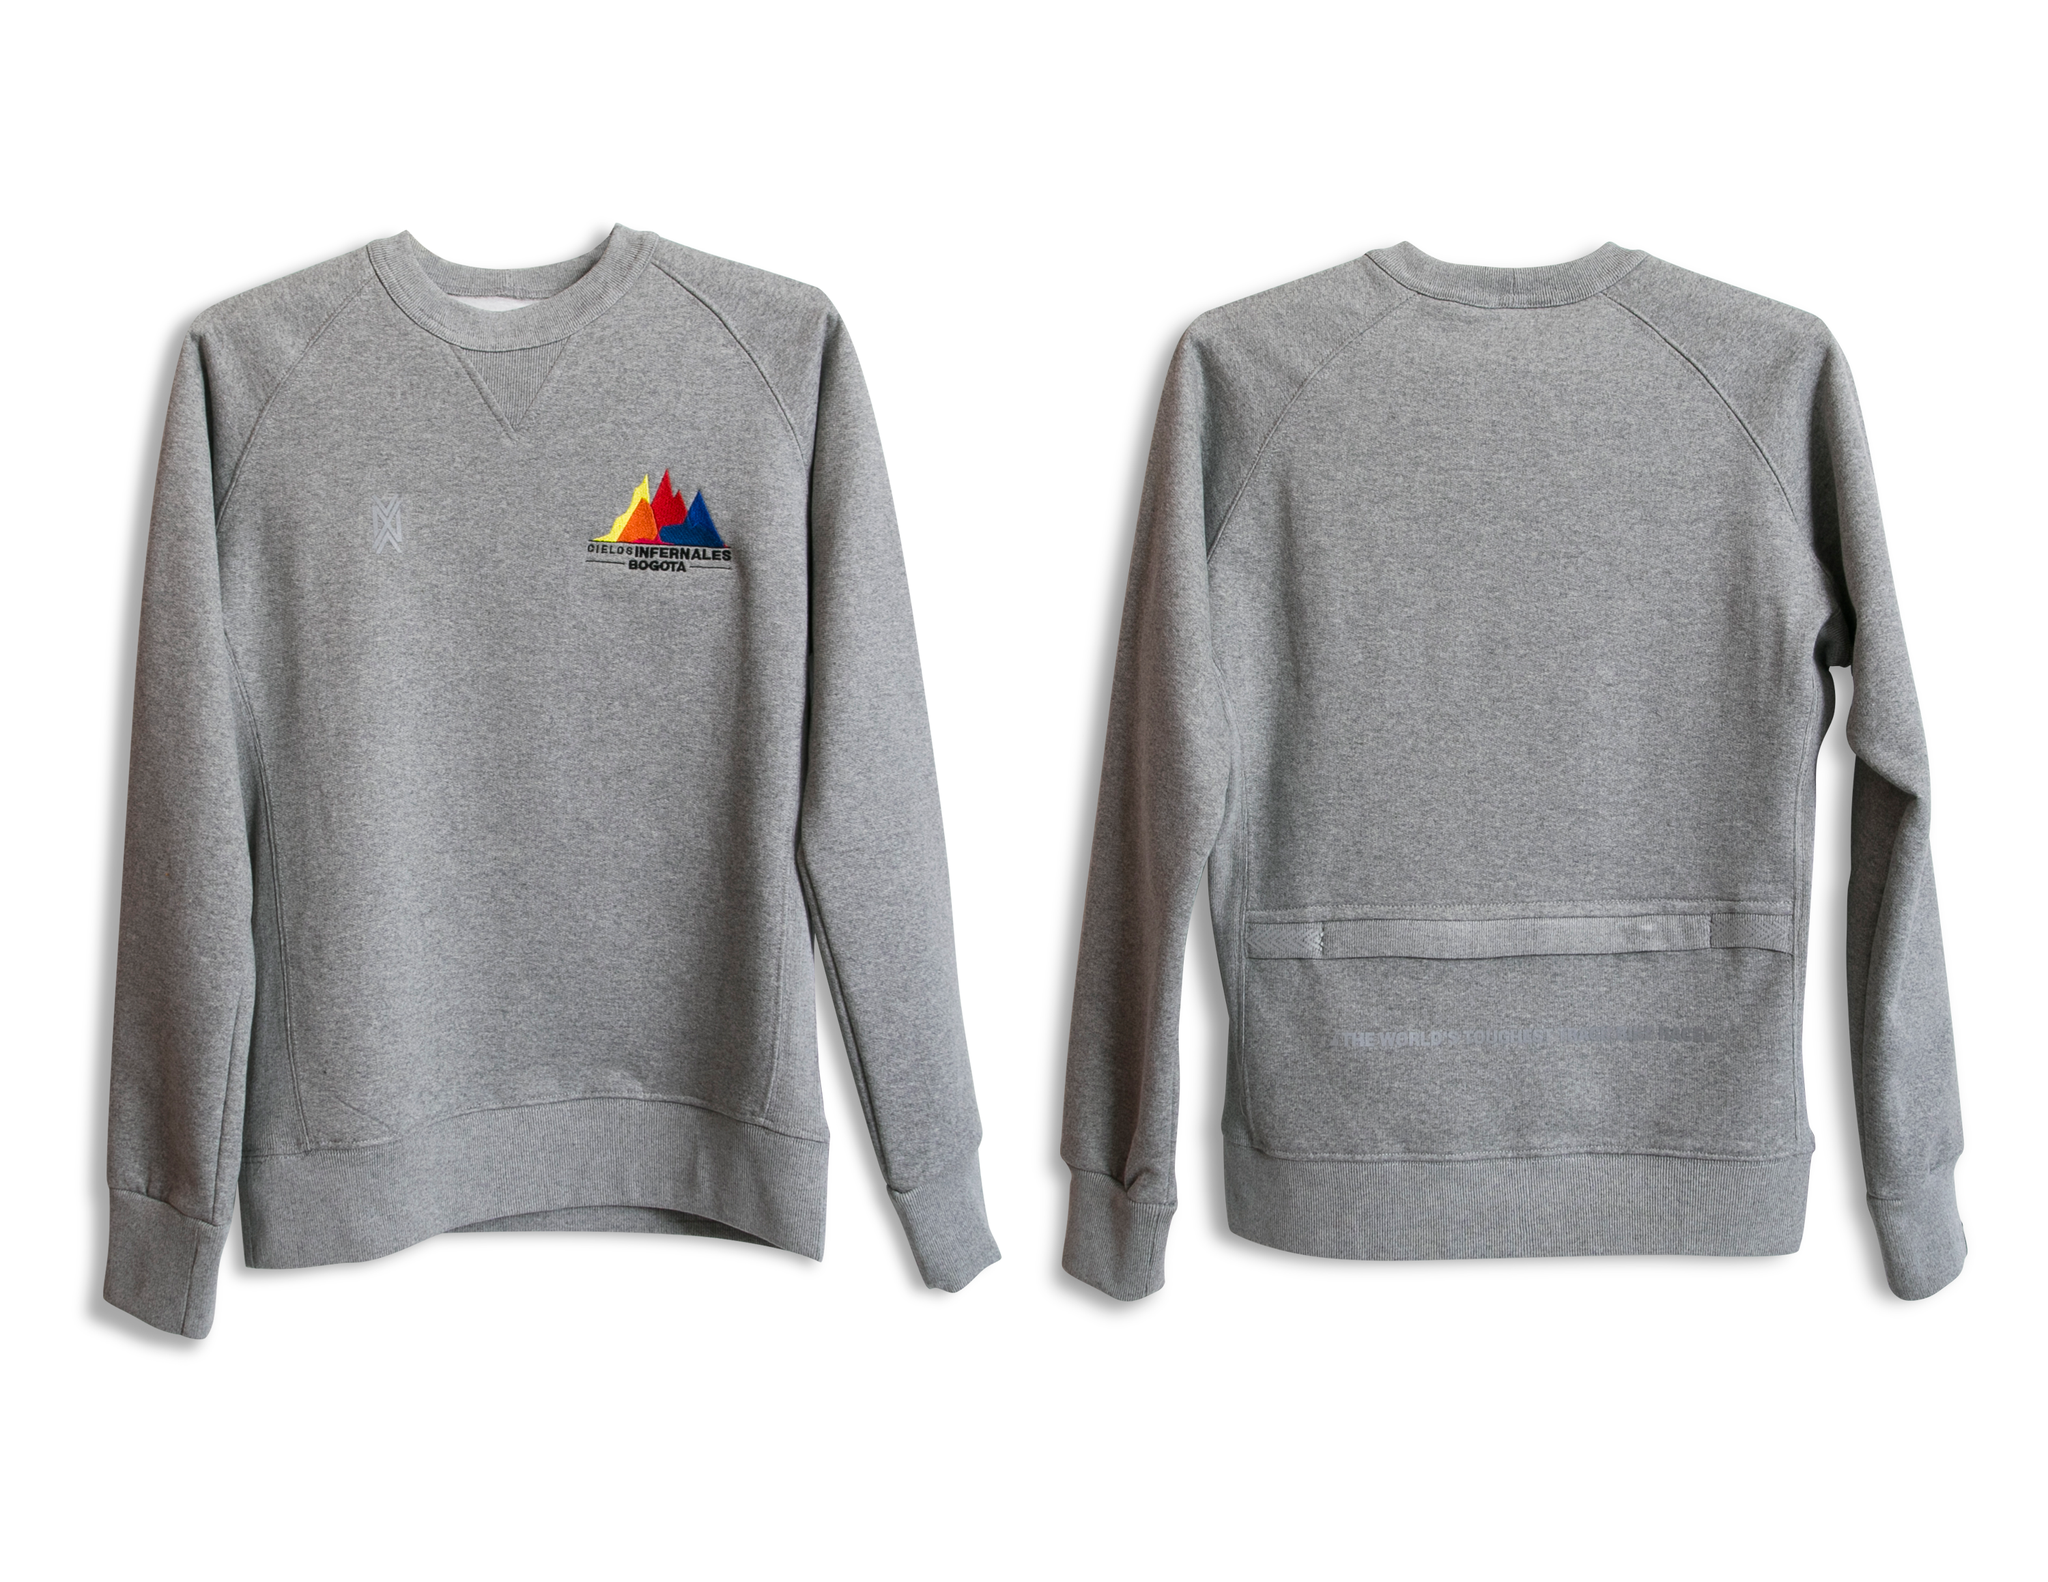 CIELOS INFERNALES X NVAYRK Sweatshirt (Limited Edition)